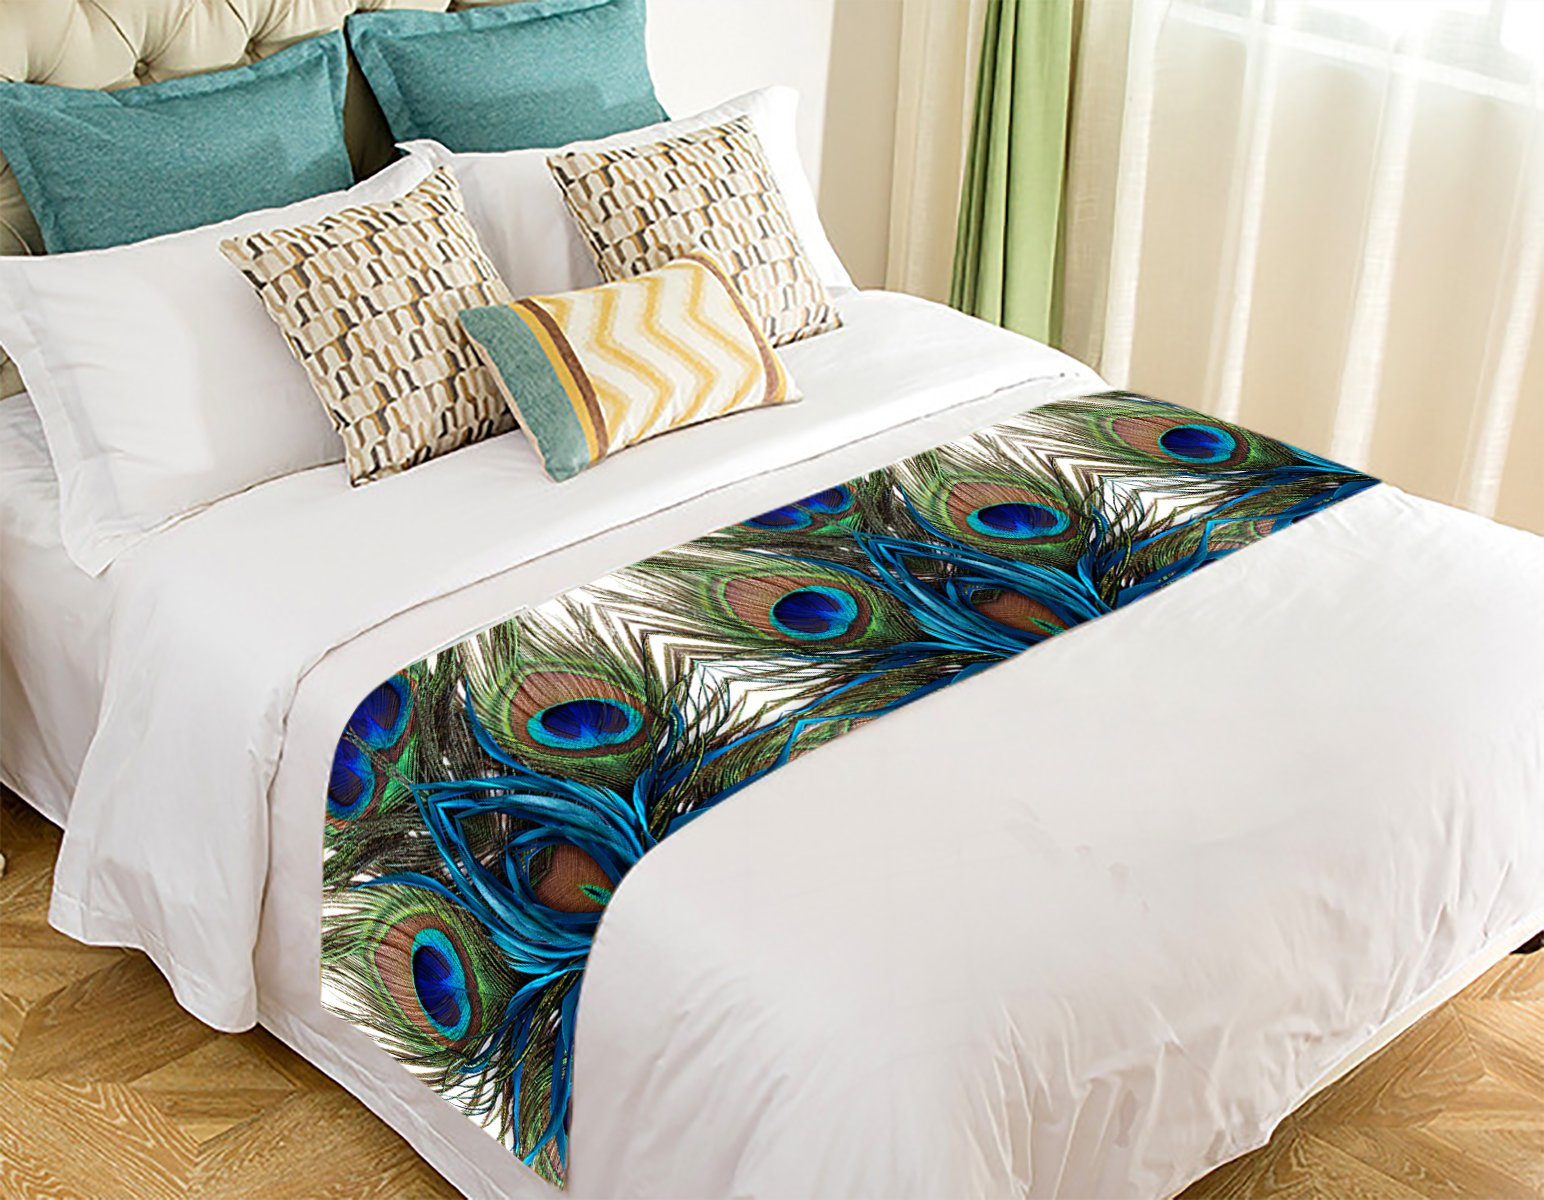 Custom Peacock Bed Runner,Peacock Bed Runner Bedding Scarf Bed Decoration 20x95 inch